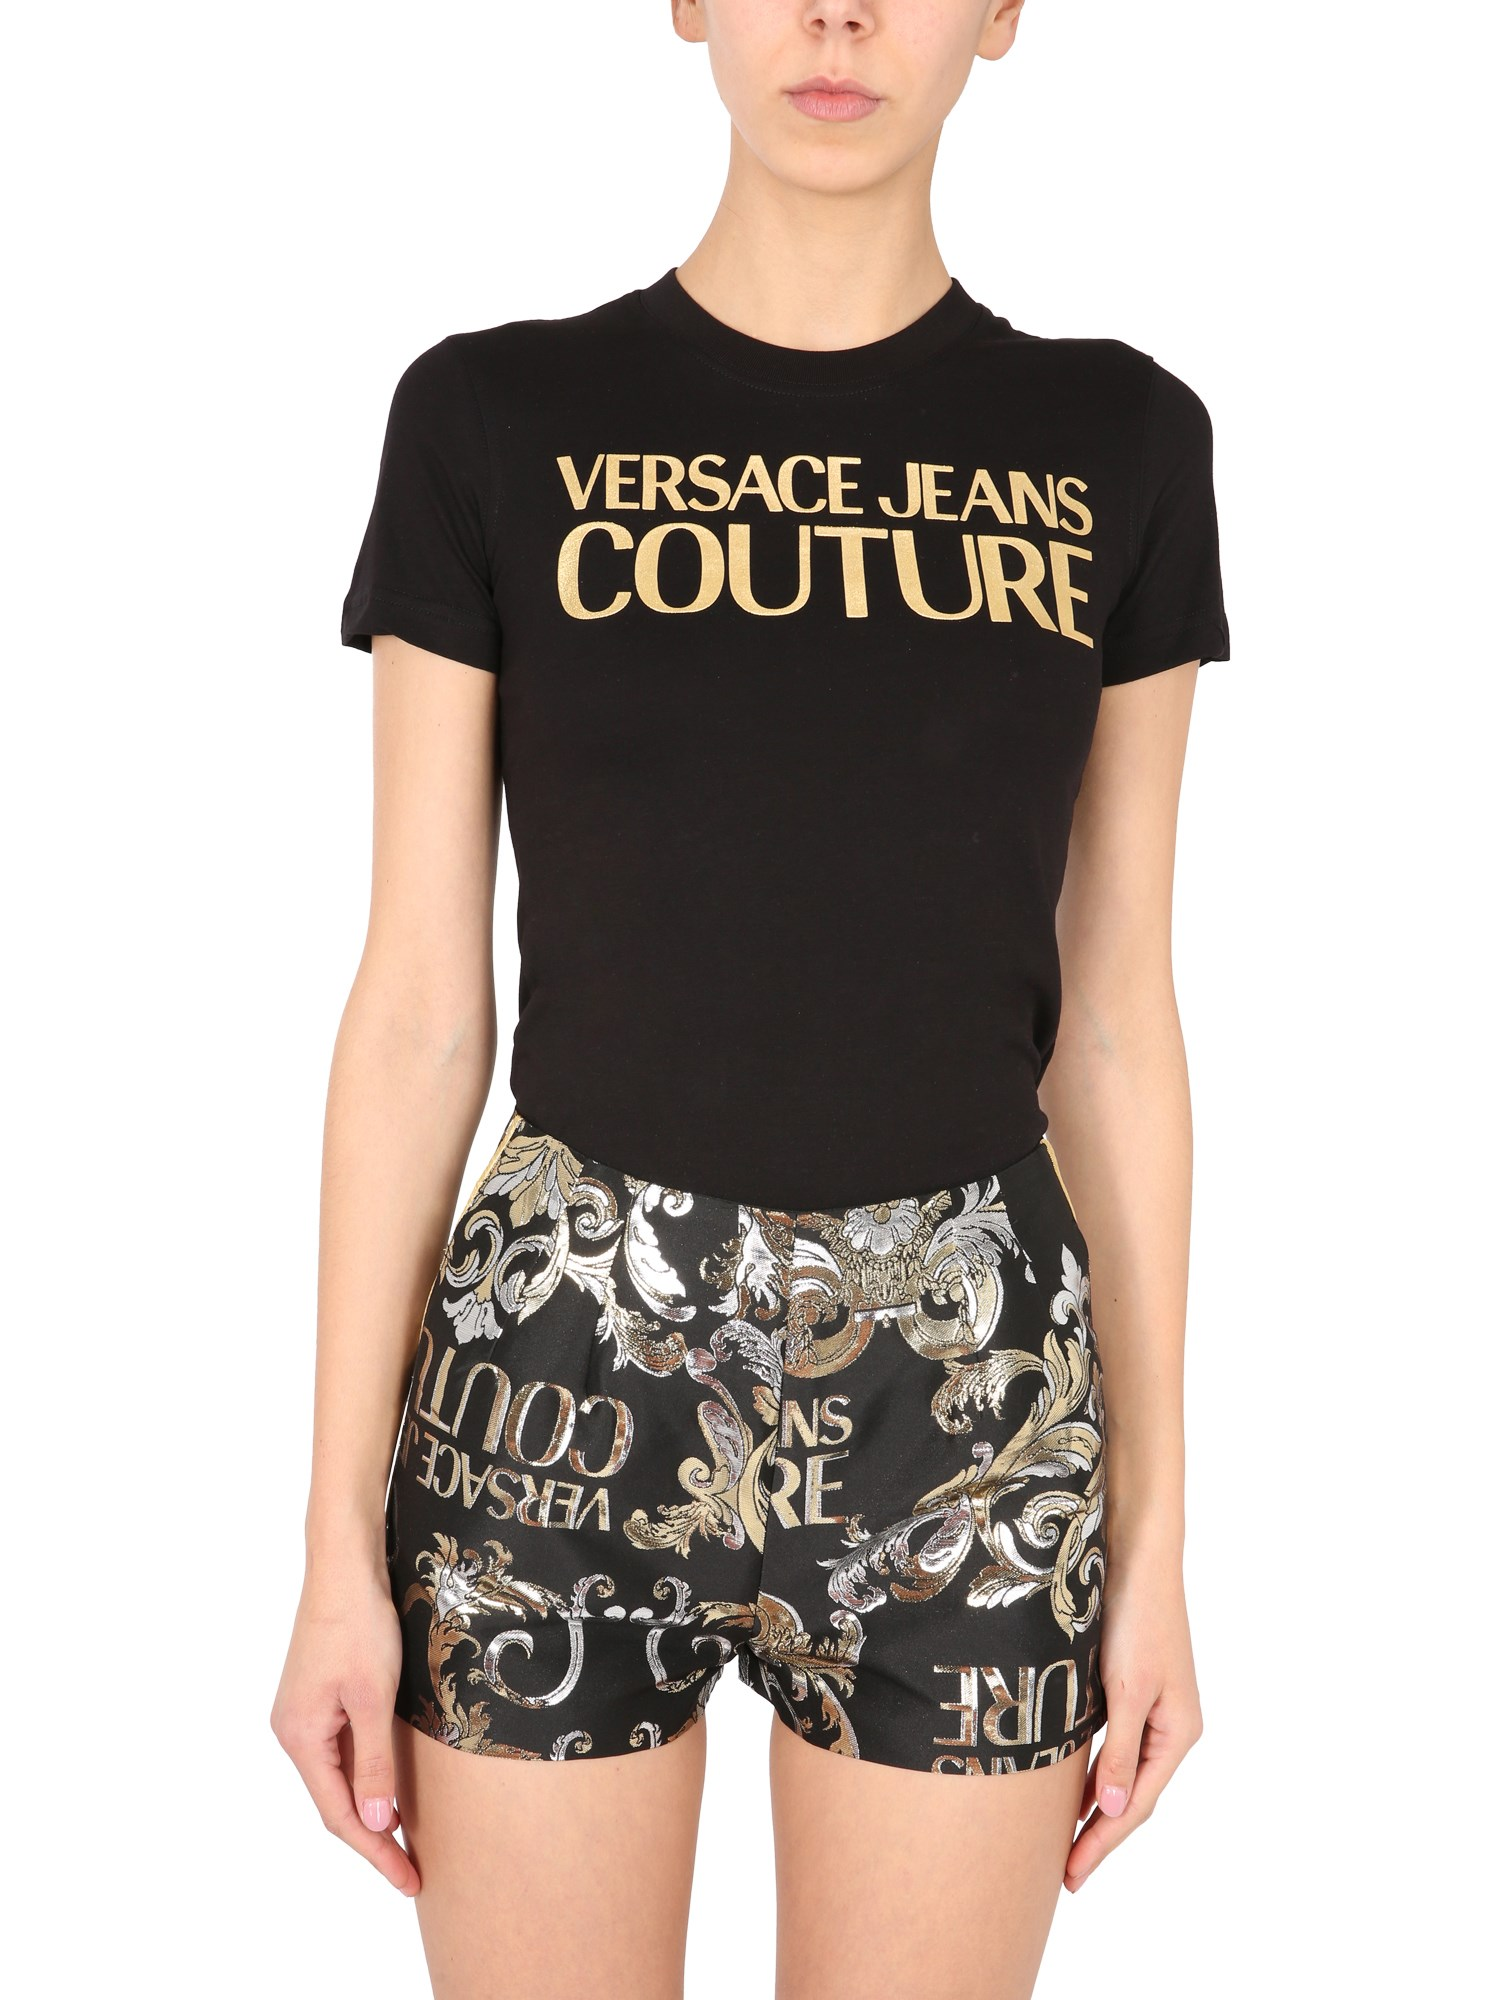 Versace Jeans Couture T-SHIRT CON LOGO METALLICO